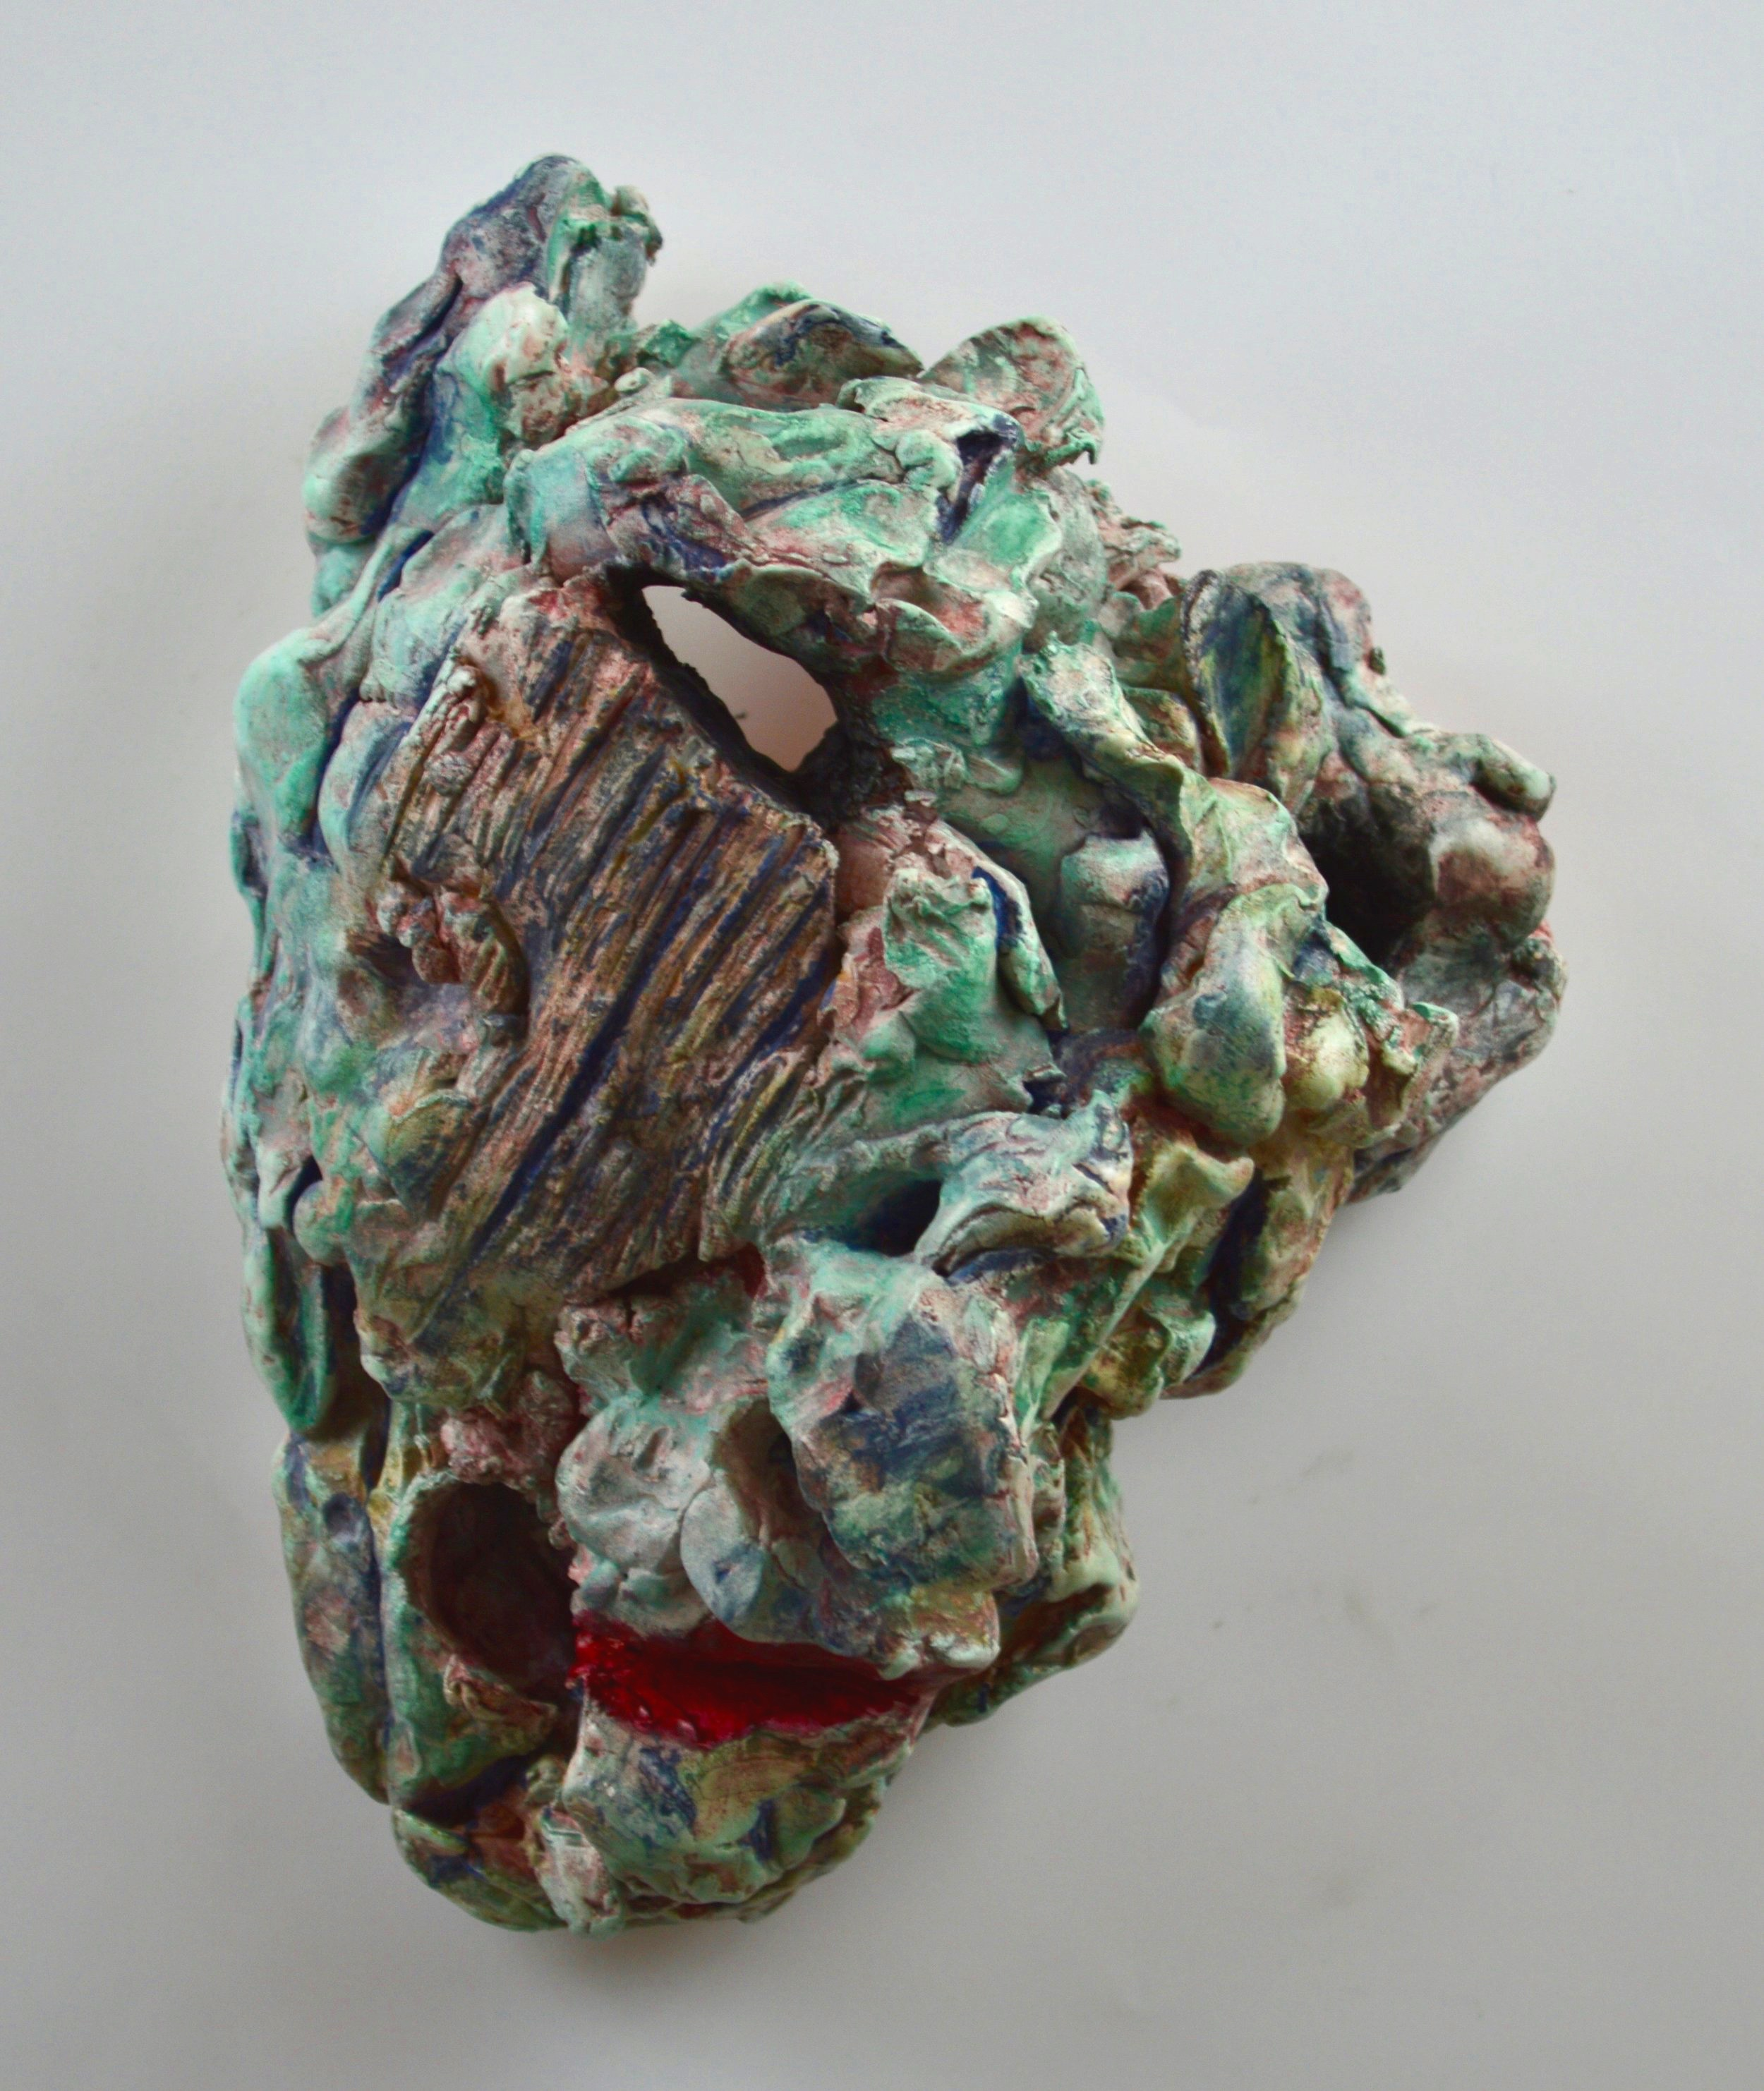 fired stoneware, oxides